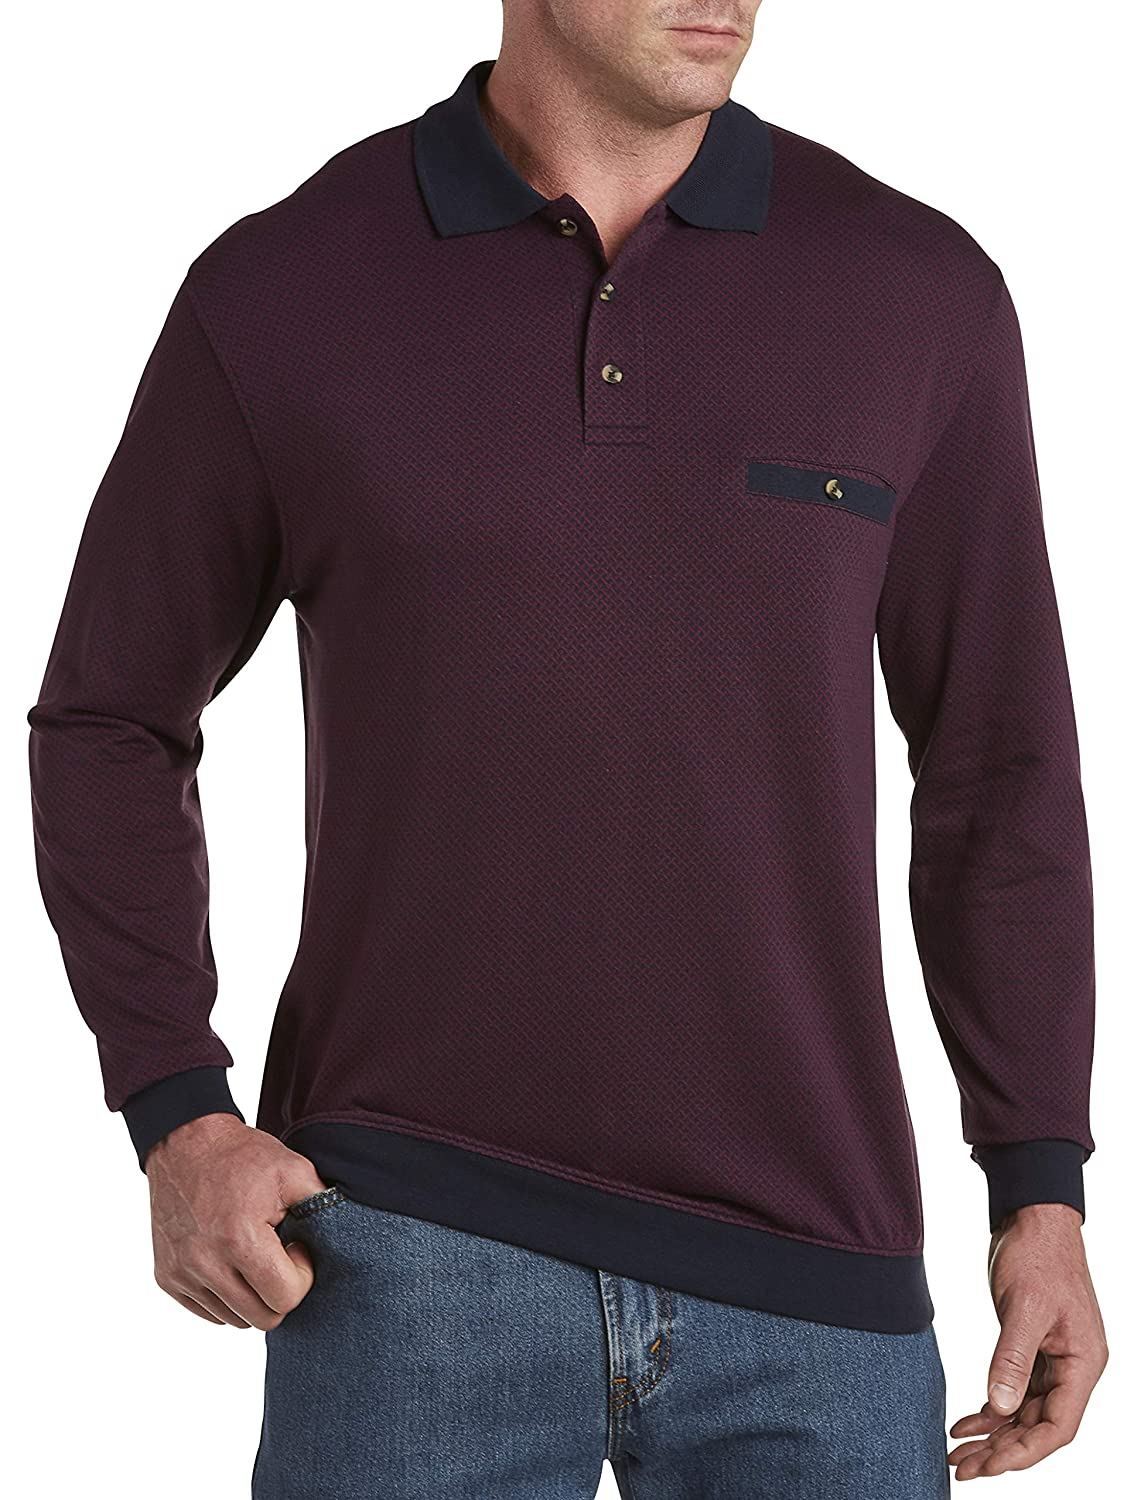 Grape Wine Harbor Bay by DXL Big and Tall Basketweave Polo Shirt